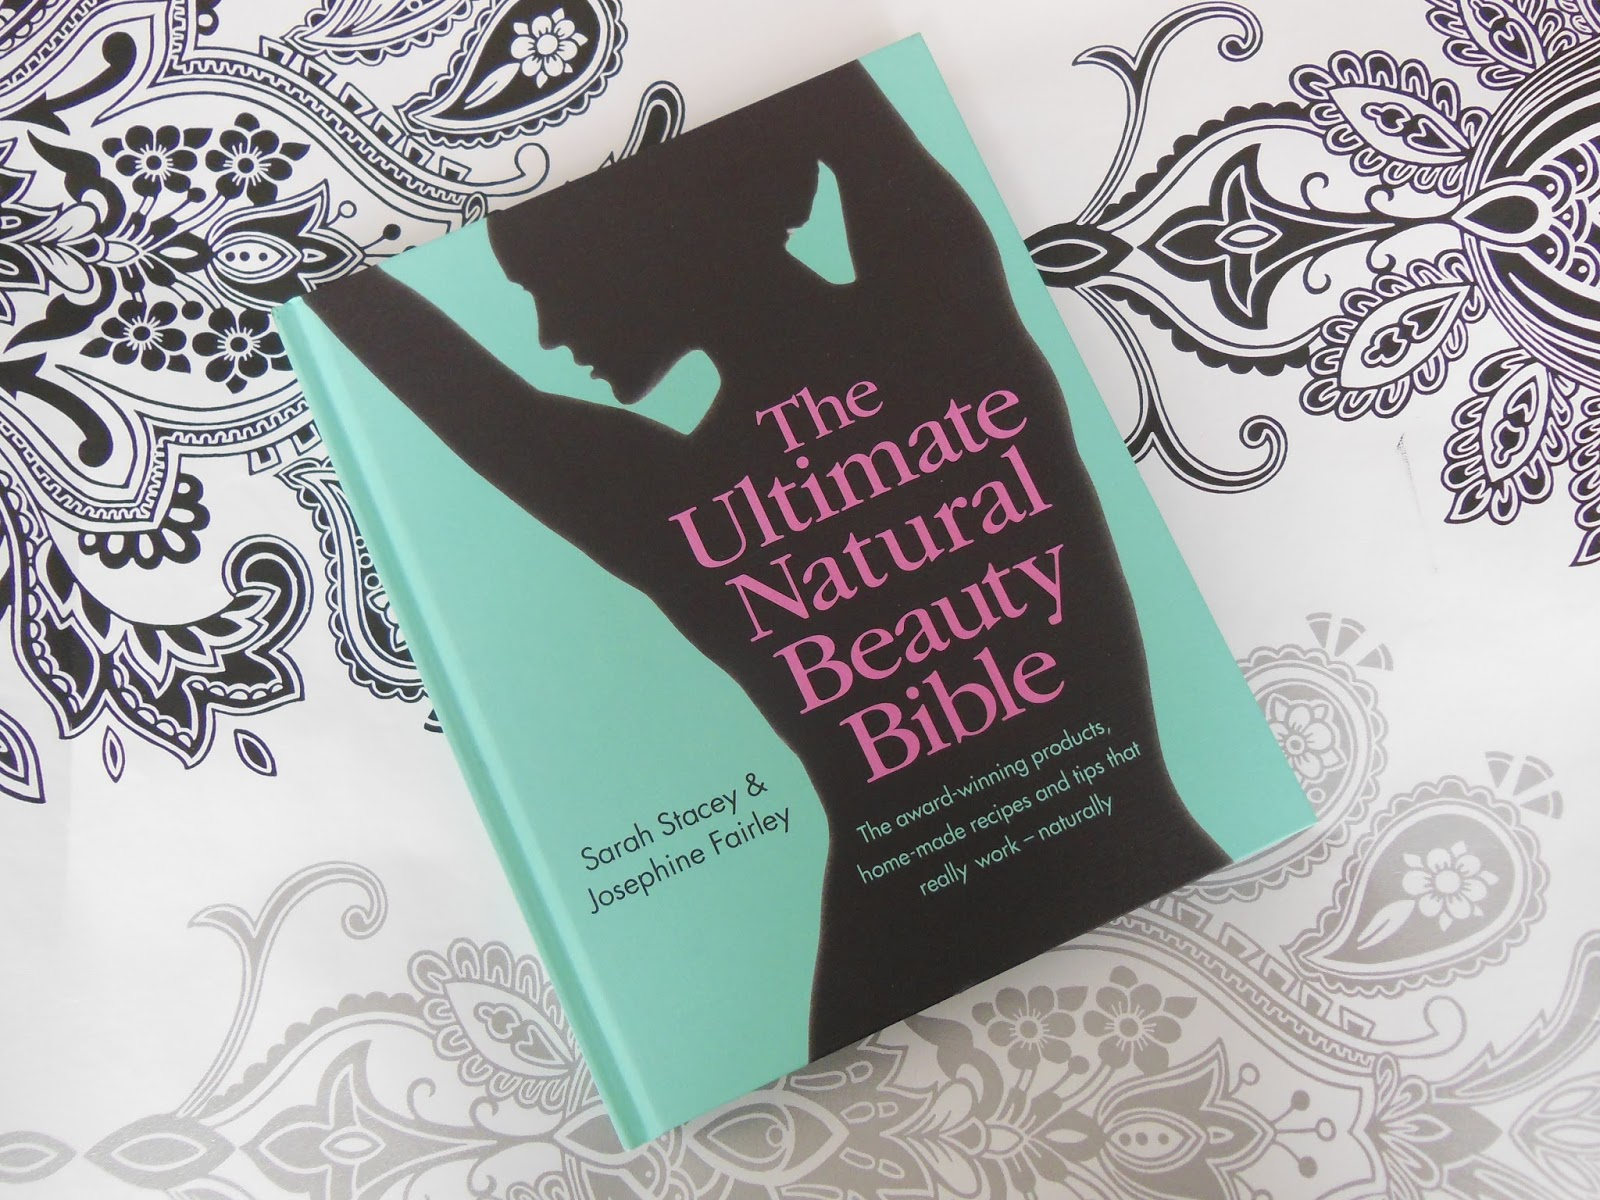 The Ultimate natural beauty bible front cover